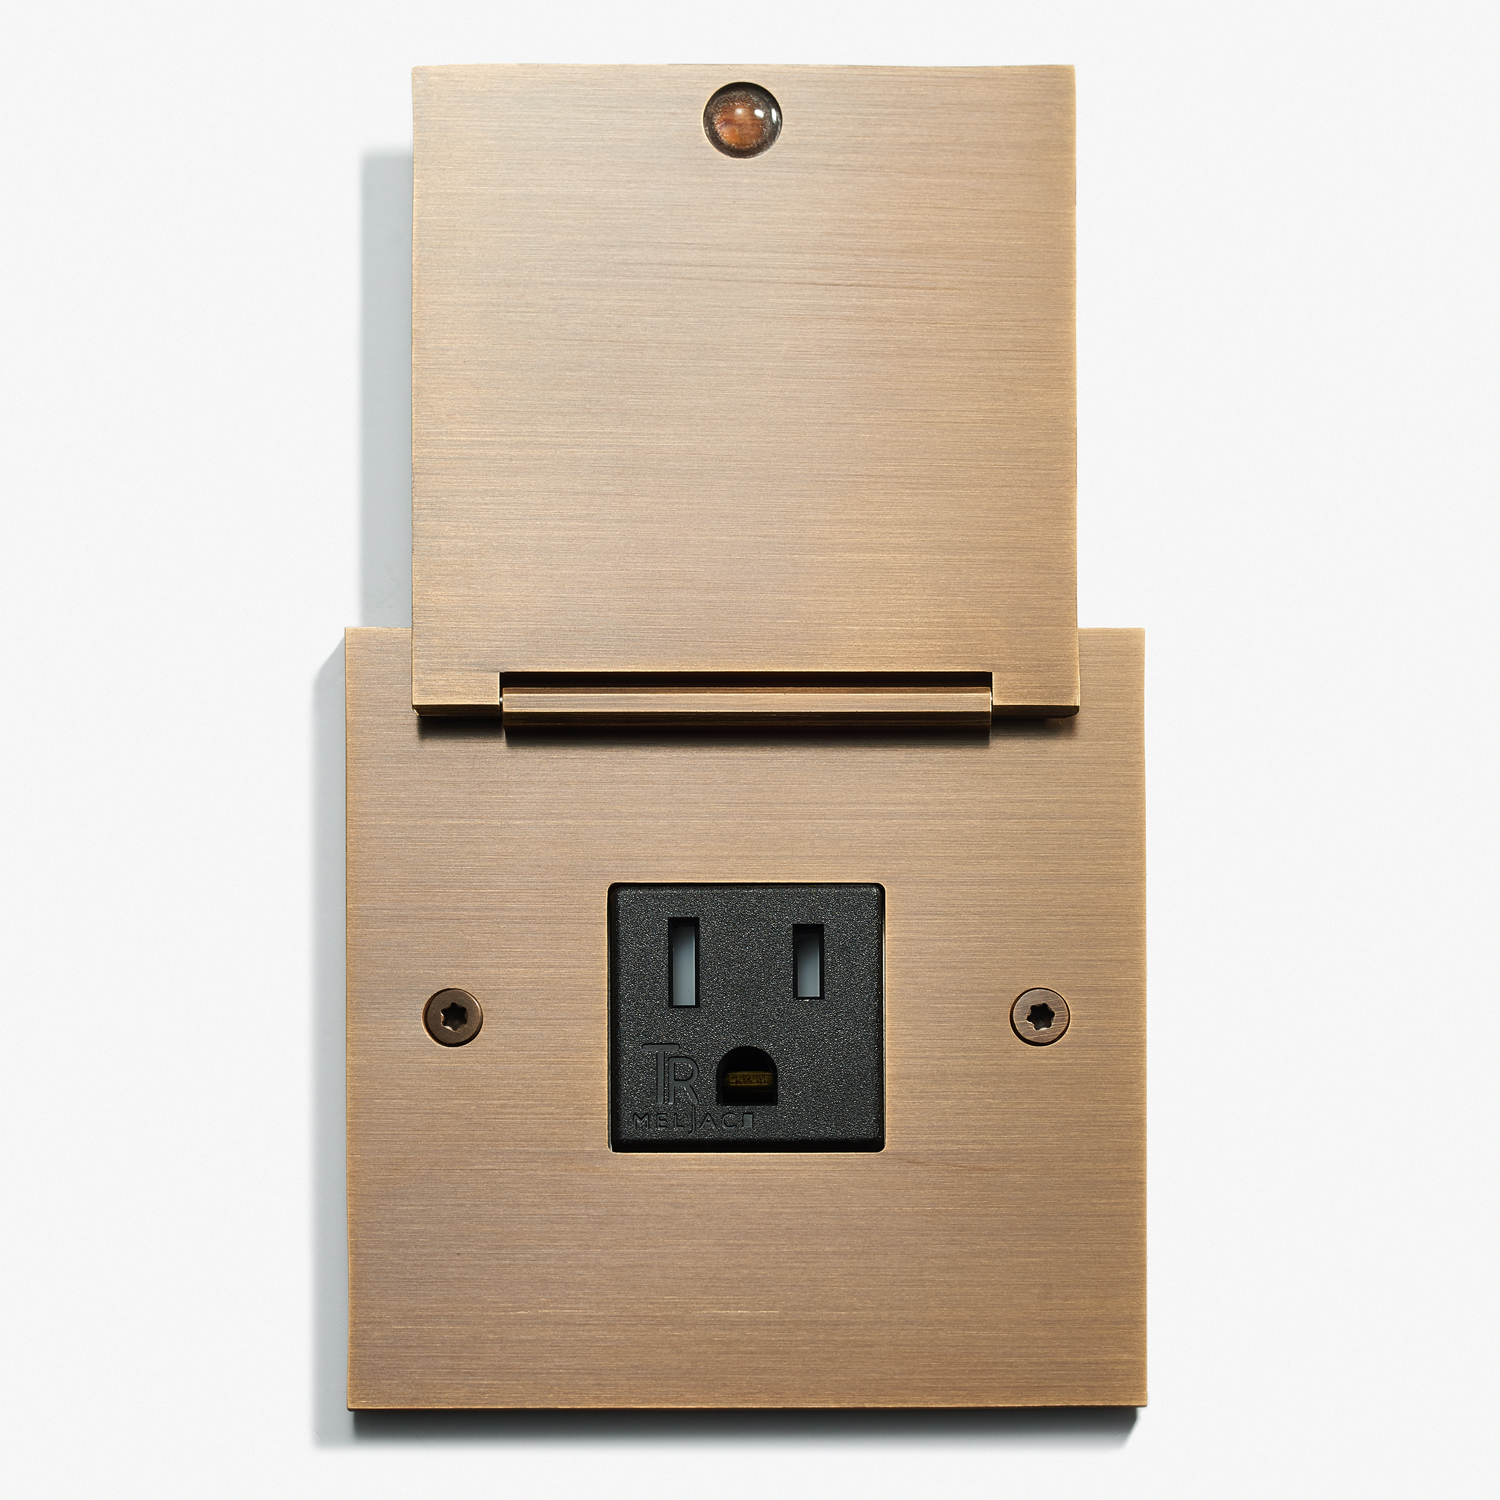 82 x 82 - Single Outlet - Covers - Straight Edge - Bronze Médaille Allemand 2.jpg